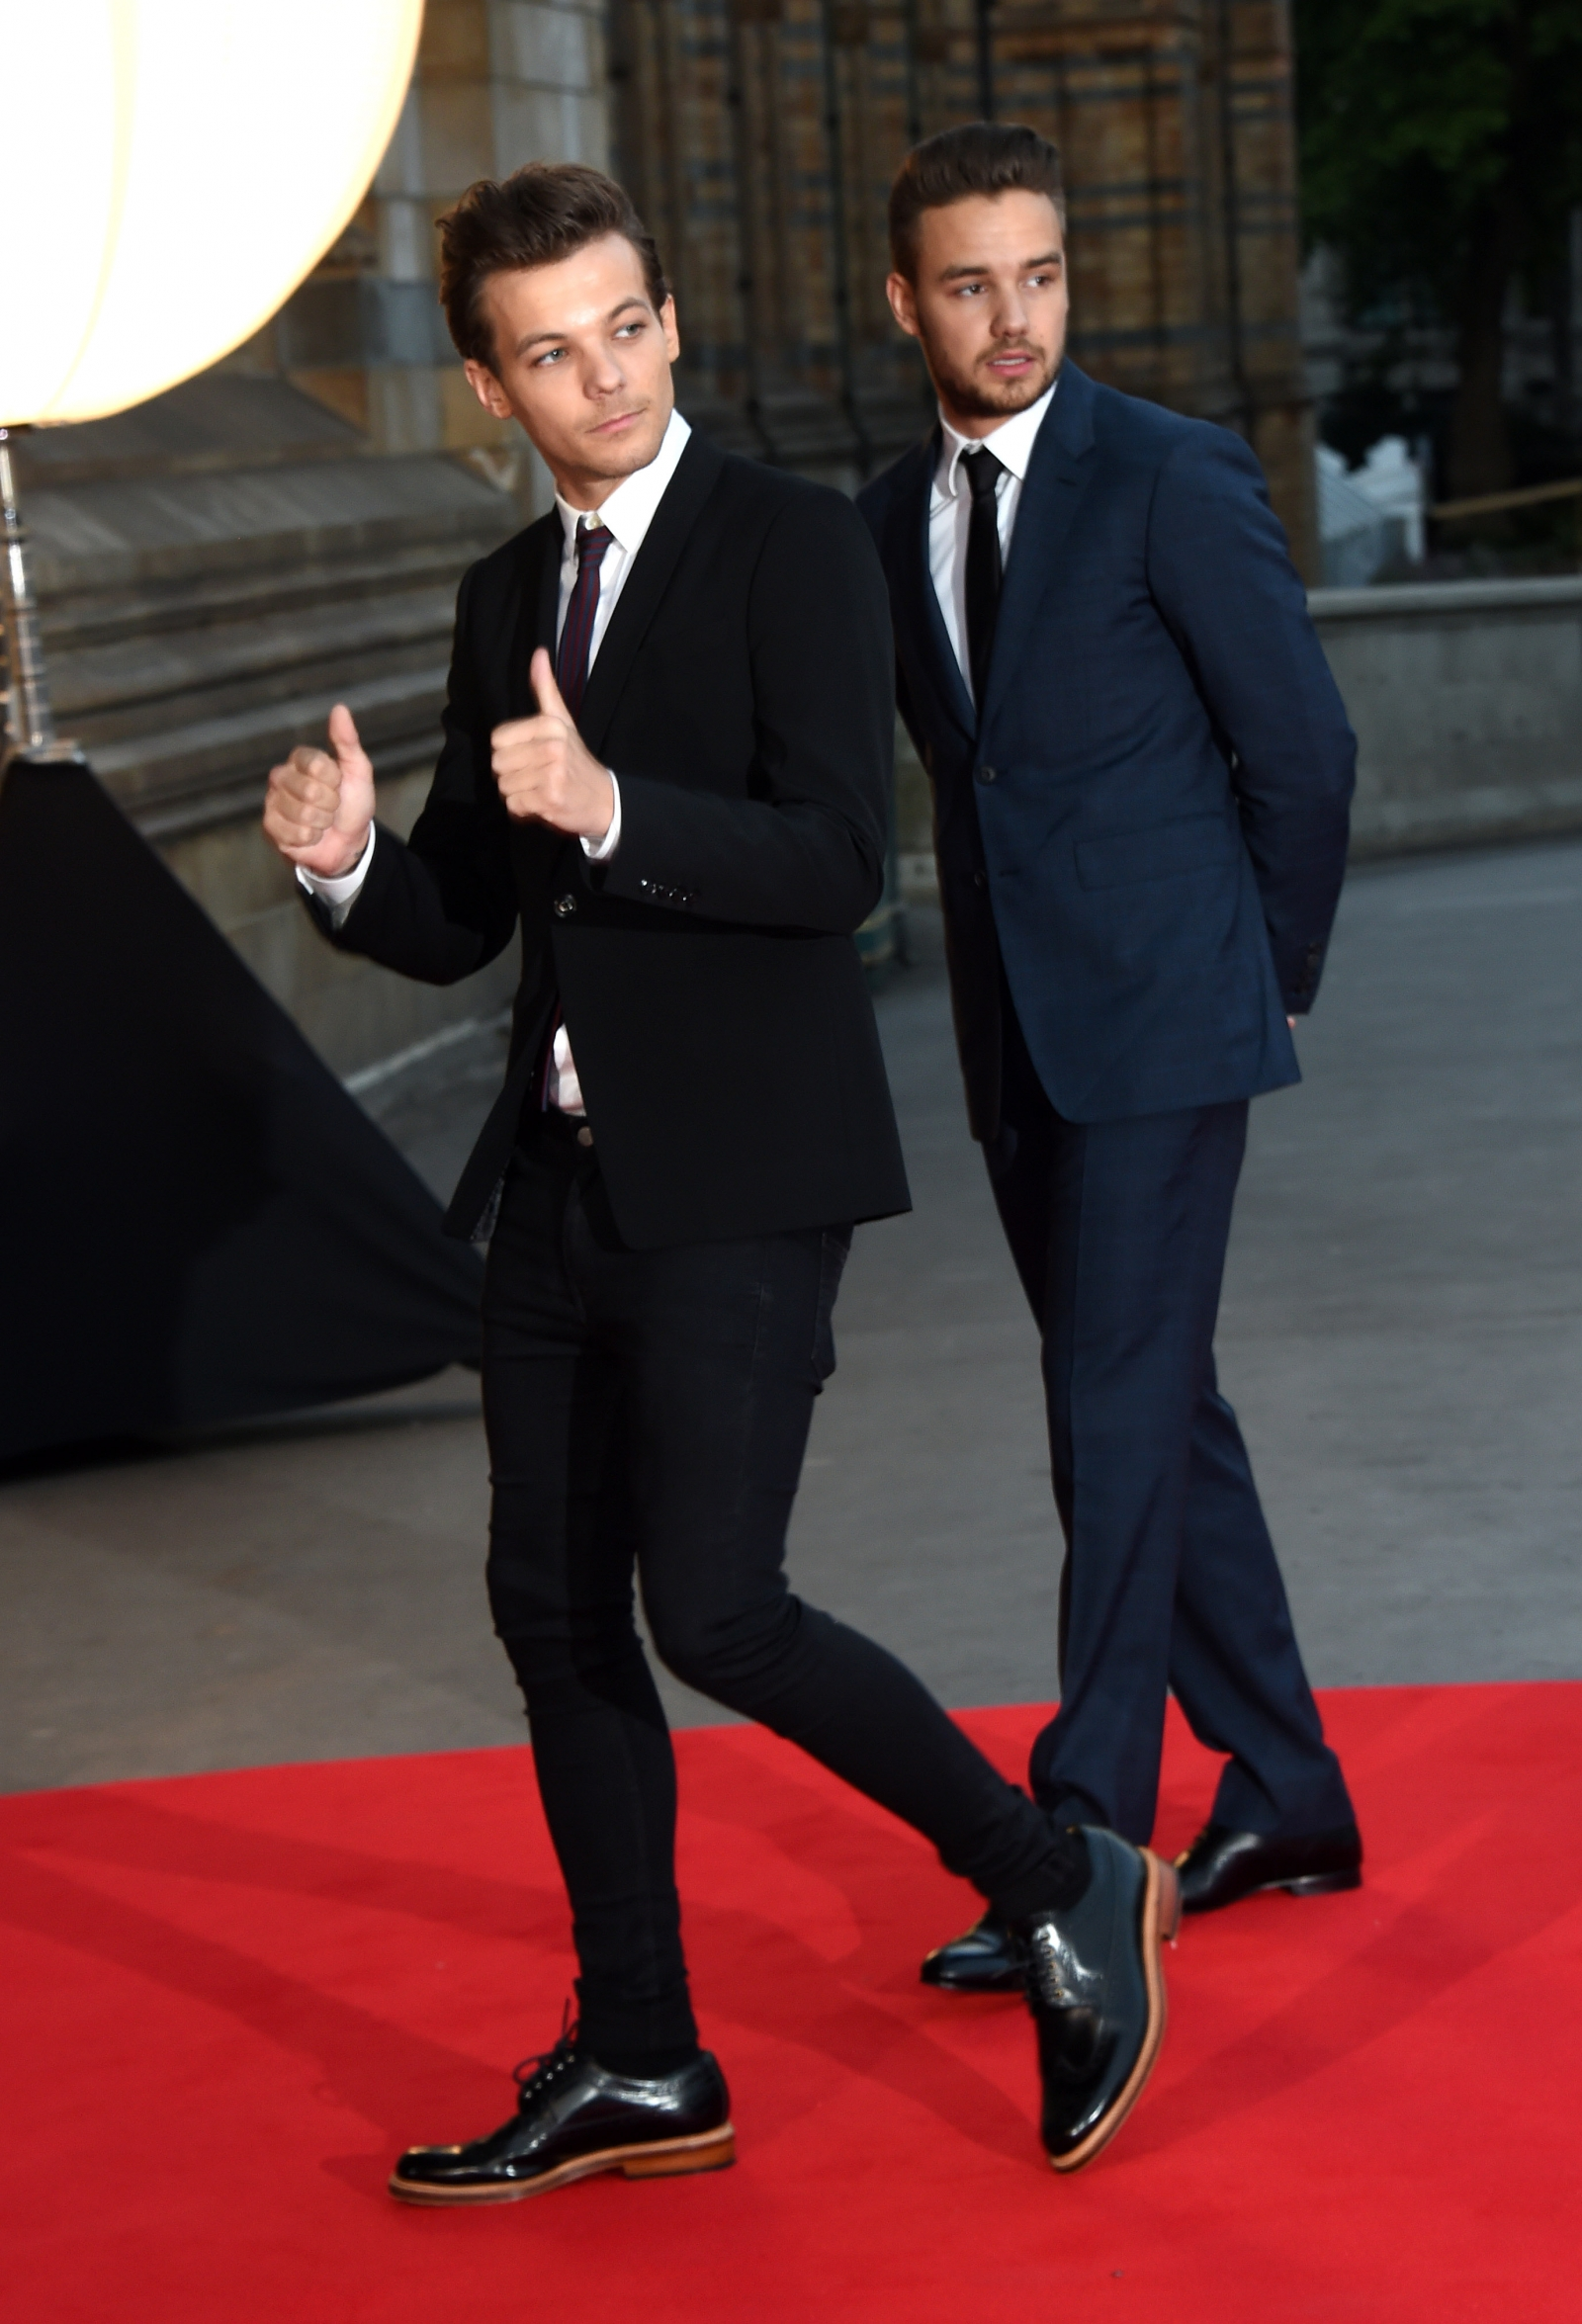 Louis Tomlinson and Liam Payne